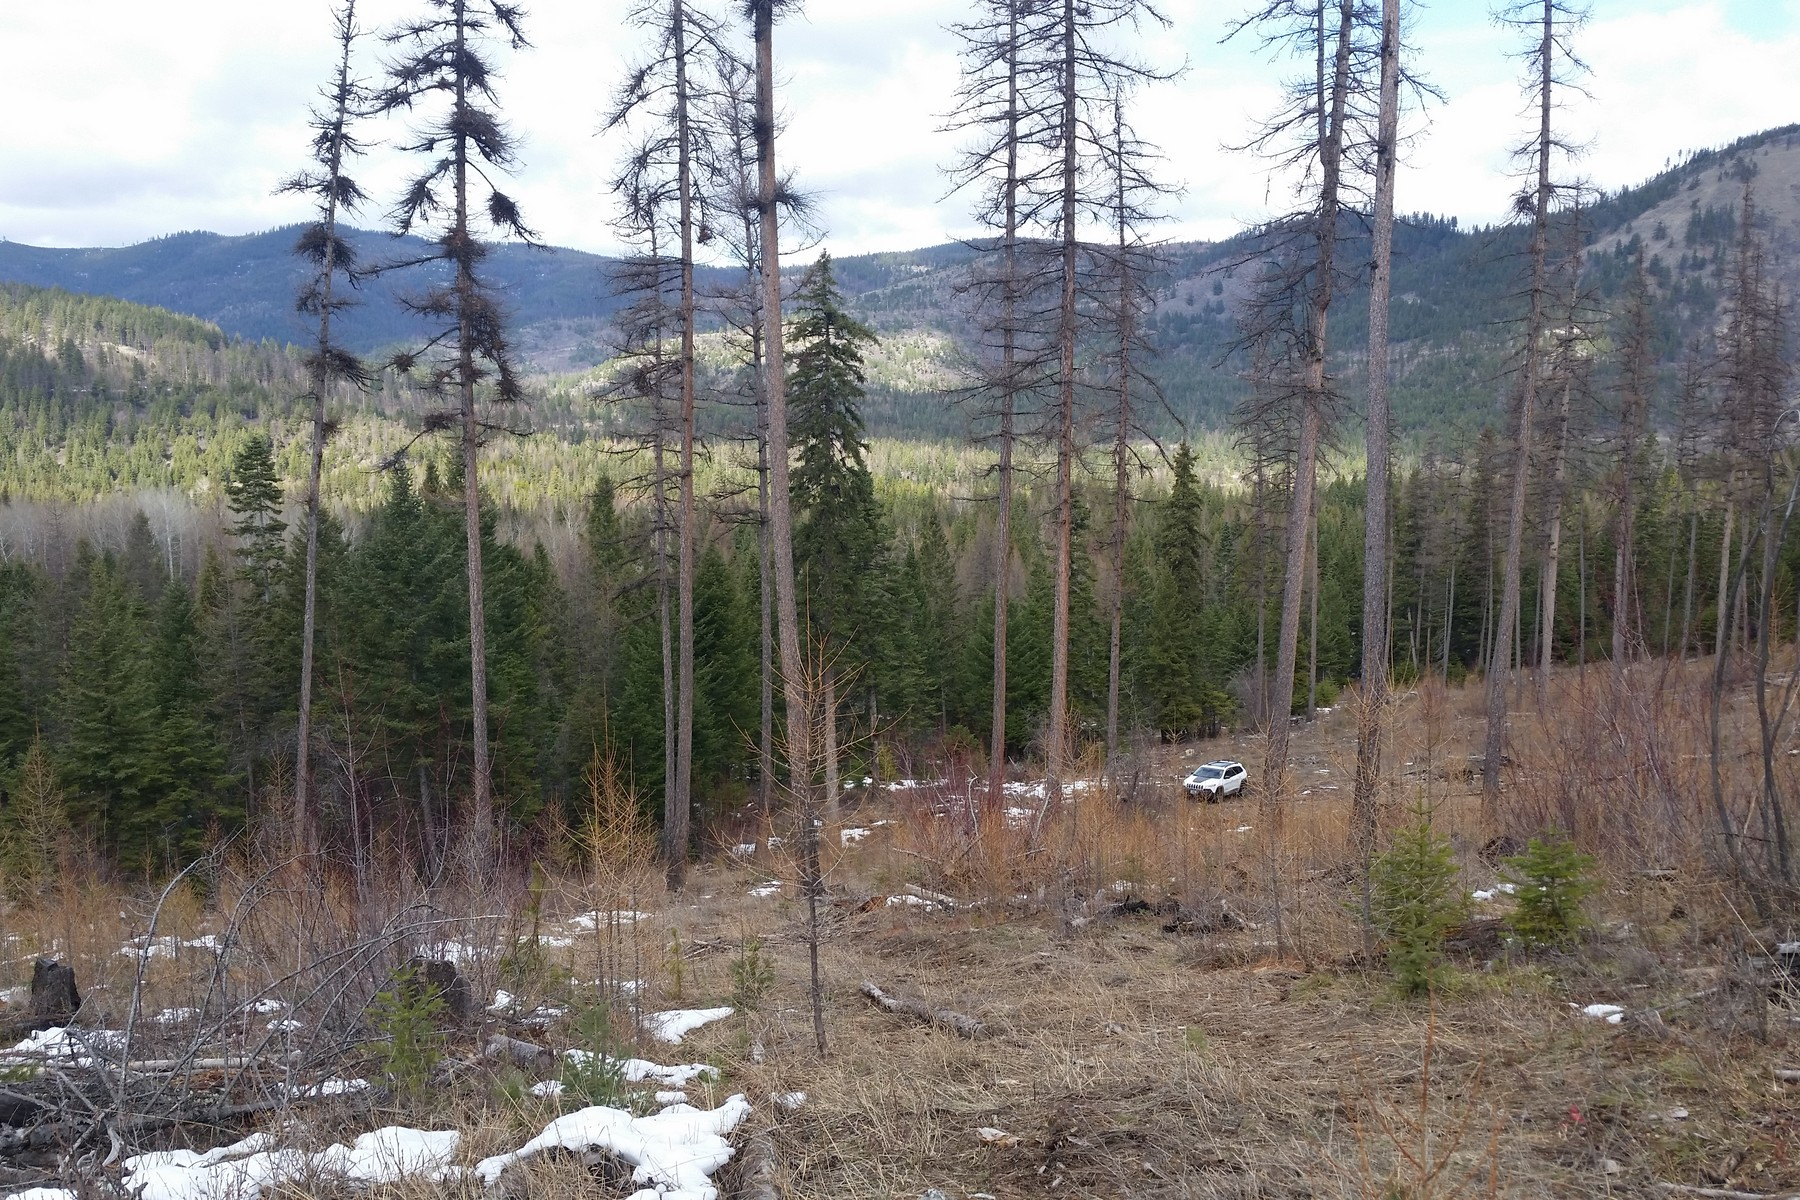 Land for Sale at Blacktail Mountain Private Forest Blacktail Mountain Rd Lakeside, Montana, 59922 United States